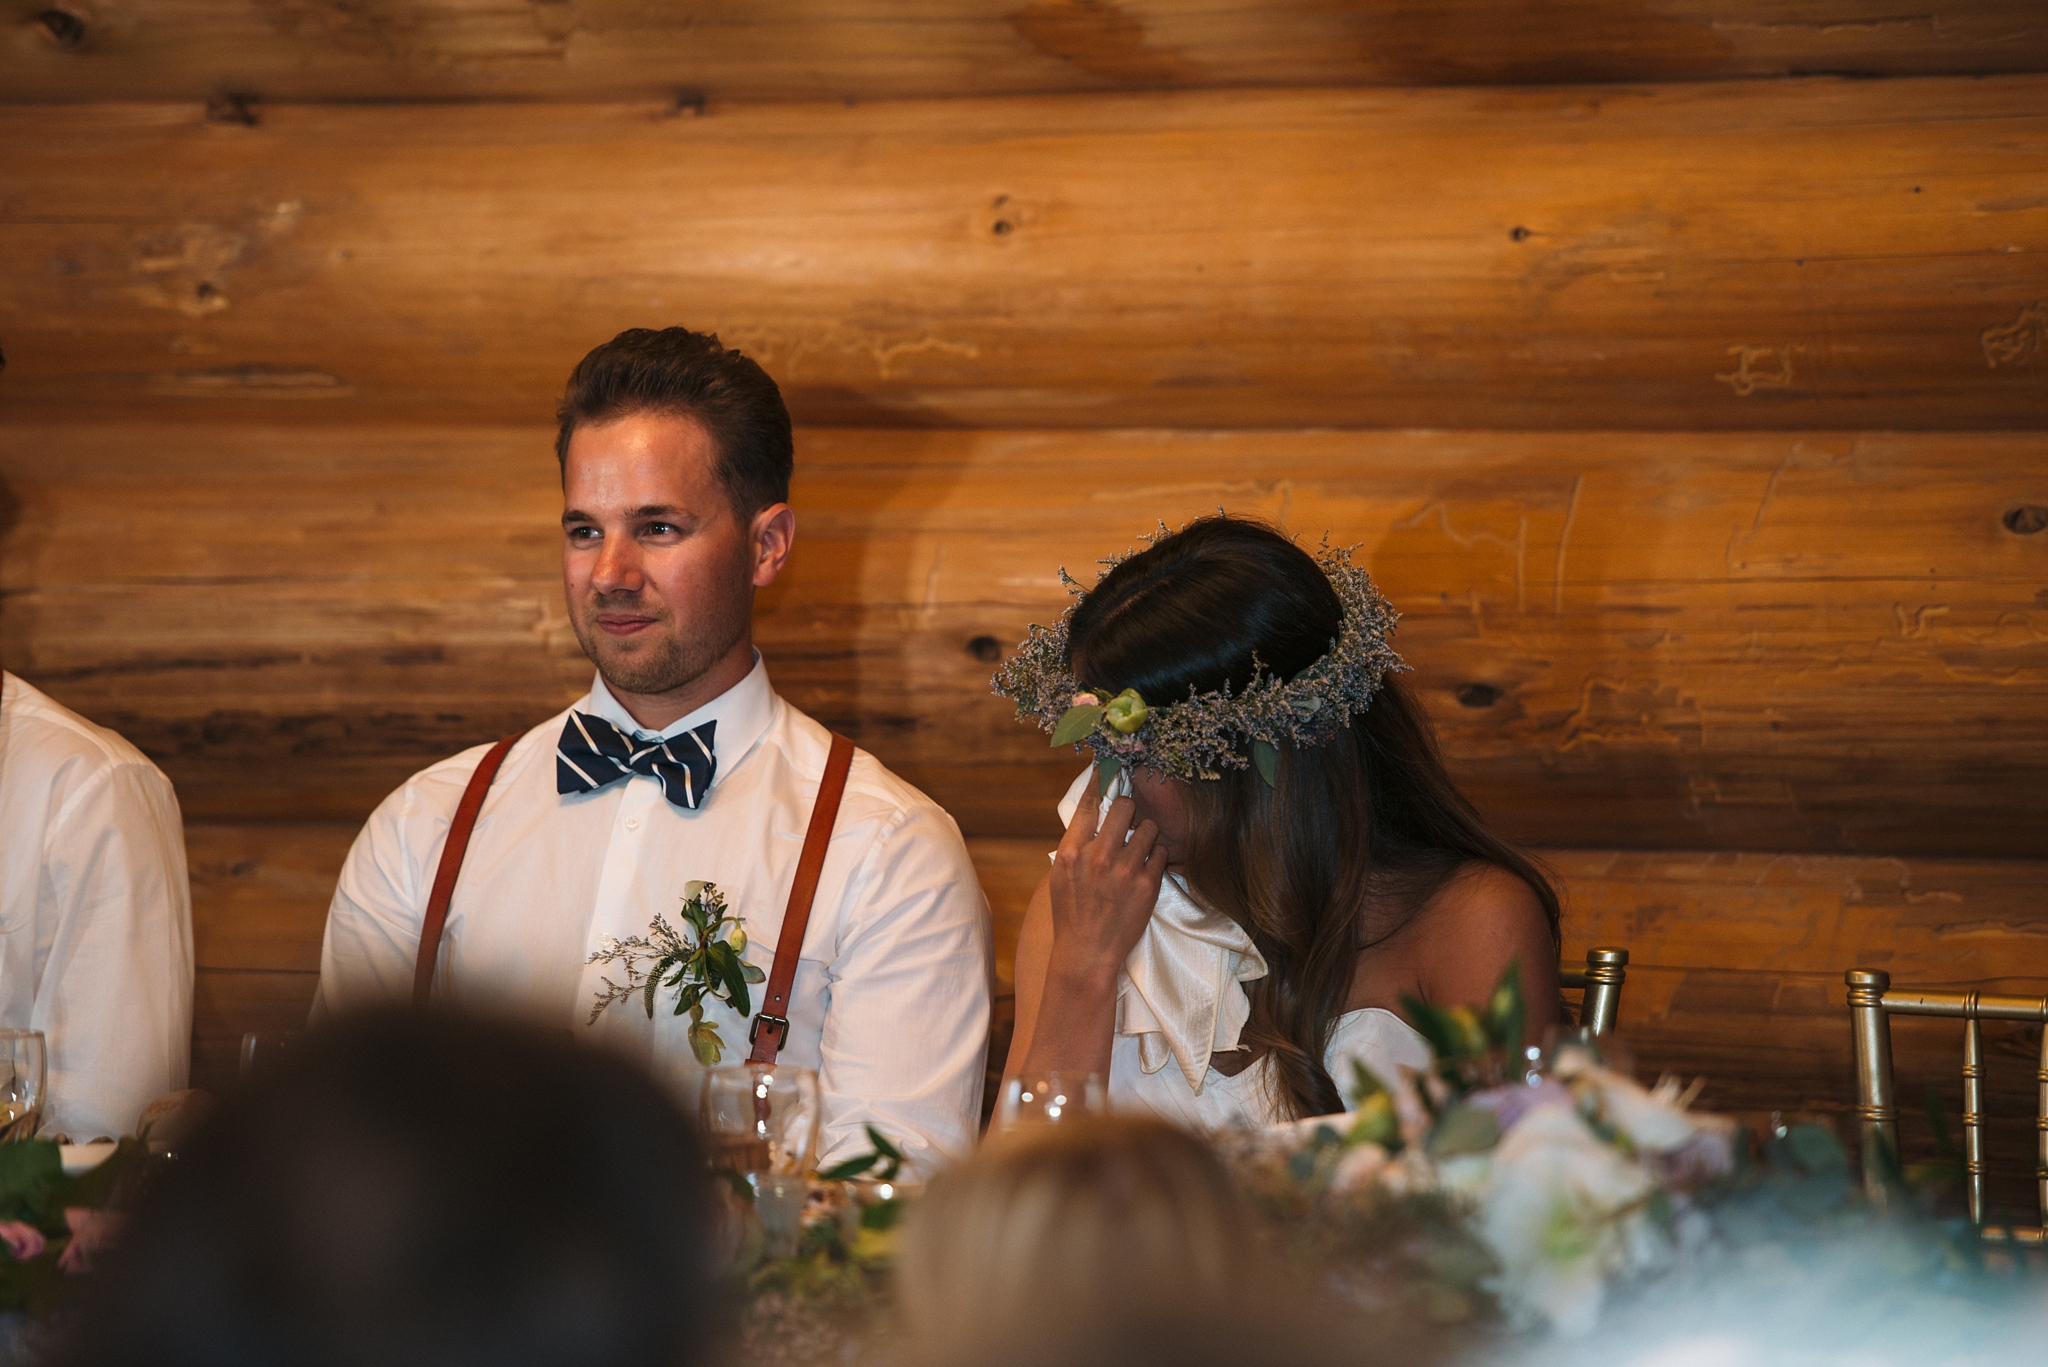 kaihla_tonai_intimate_wedding_elopement_photographer_4480